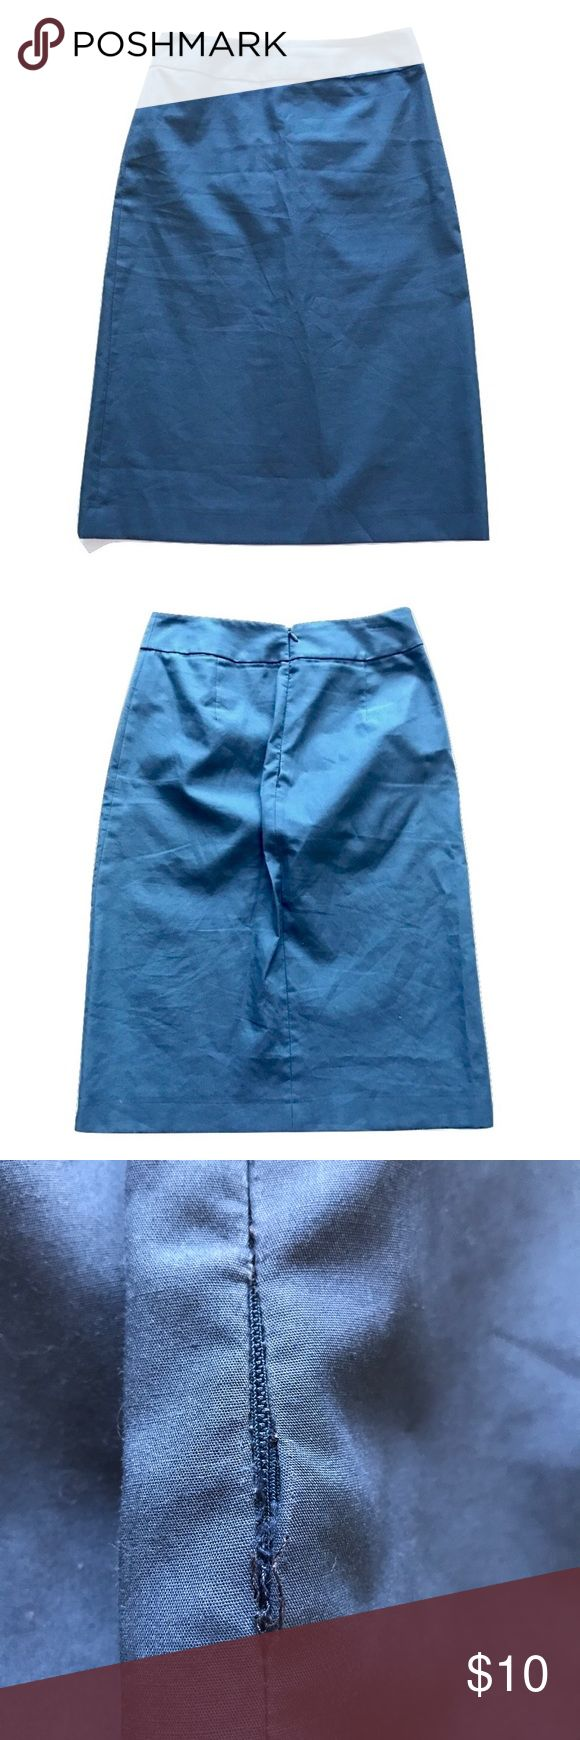 J. Crew Dusty Blue Pencil Skirt Size 2 Simple cotton pencil skirt by J. Crew. Zips up the back. Seam is coming apart at the zipper as seen in last photo. That is the only flaw and a simple fix! 👍🏻 Price reflects this flaw. Comes from a smokefree home! J. Crew Skirts